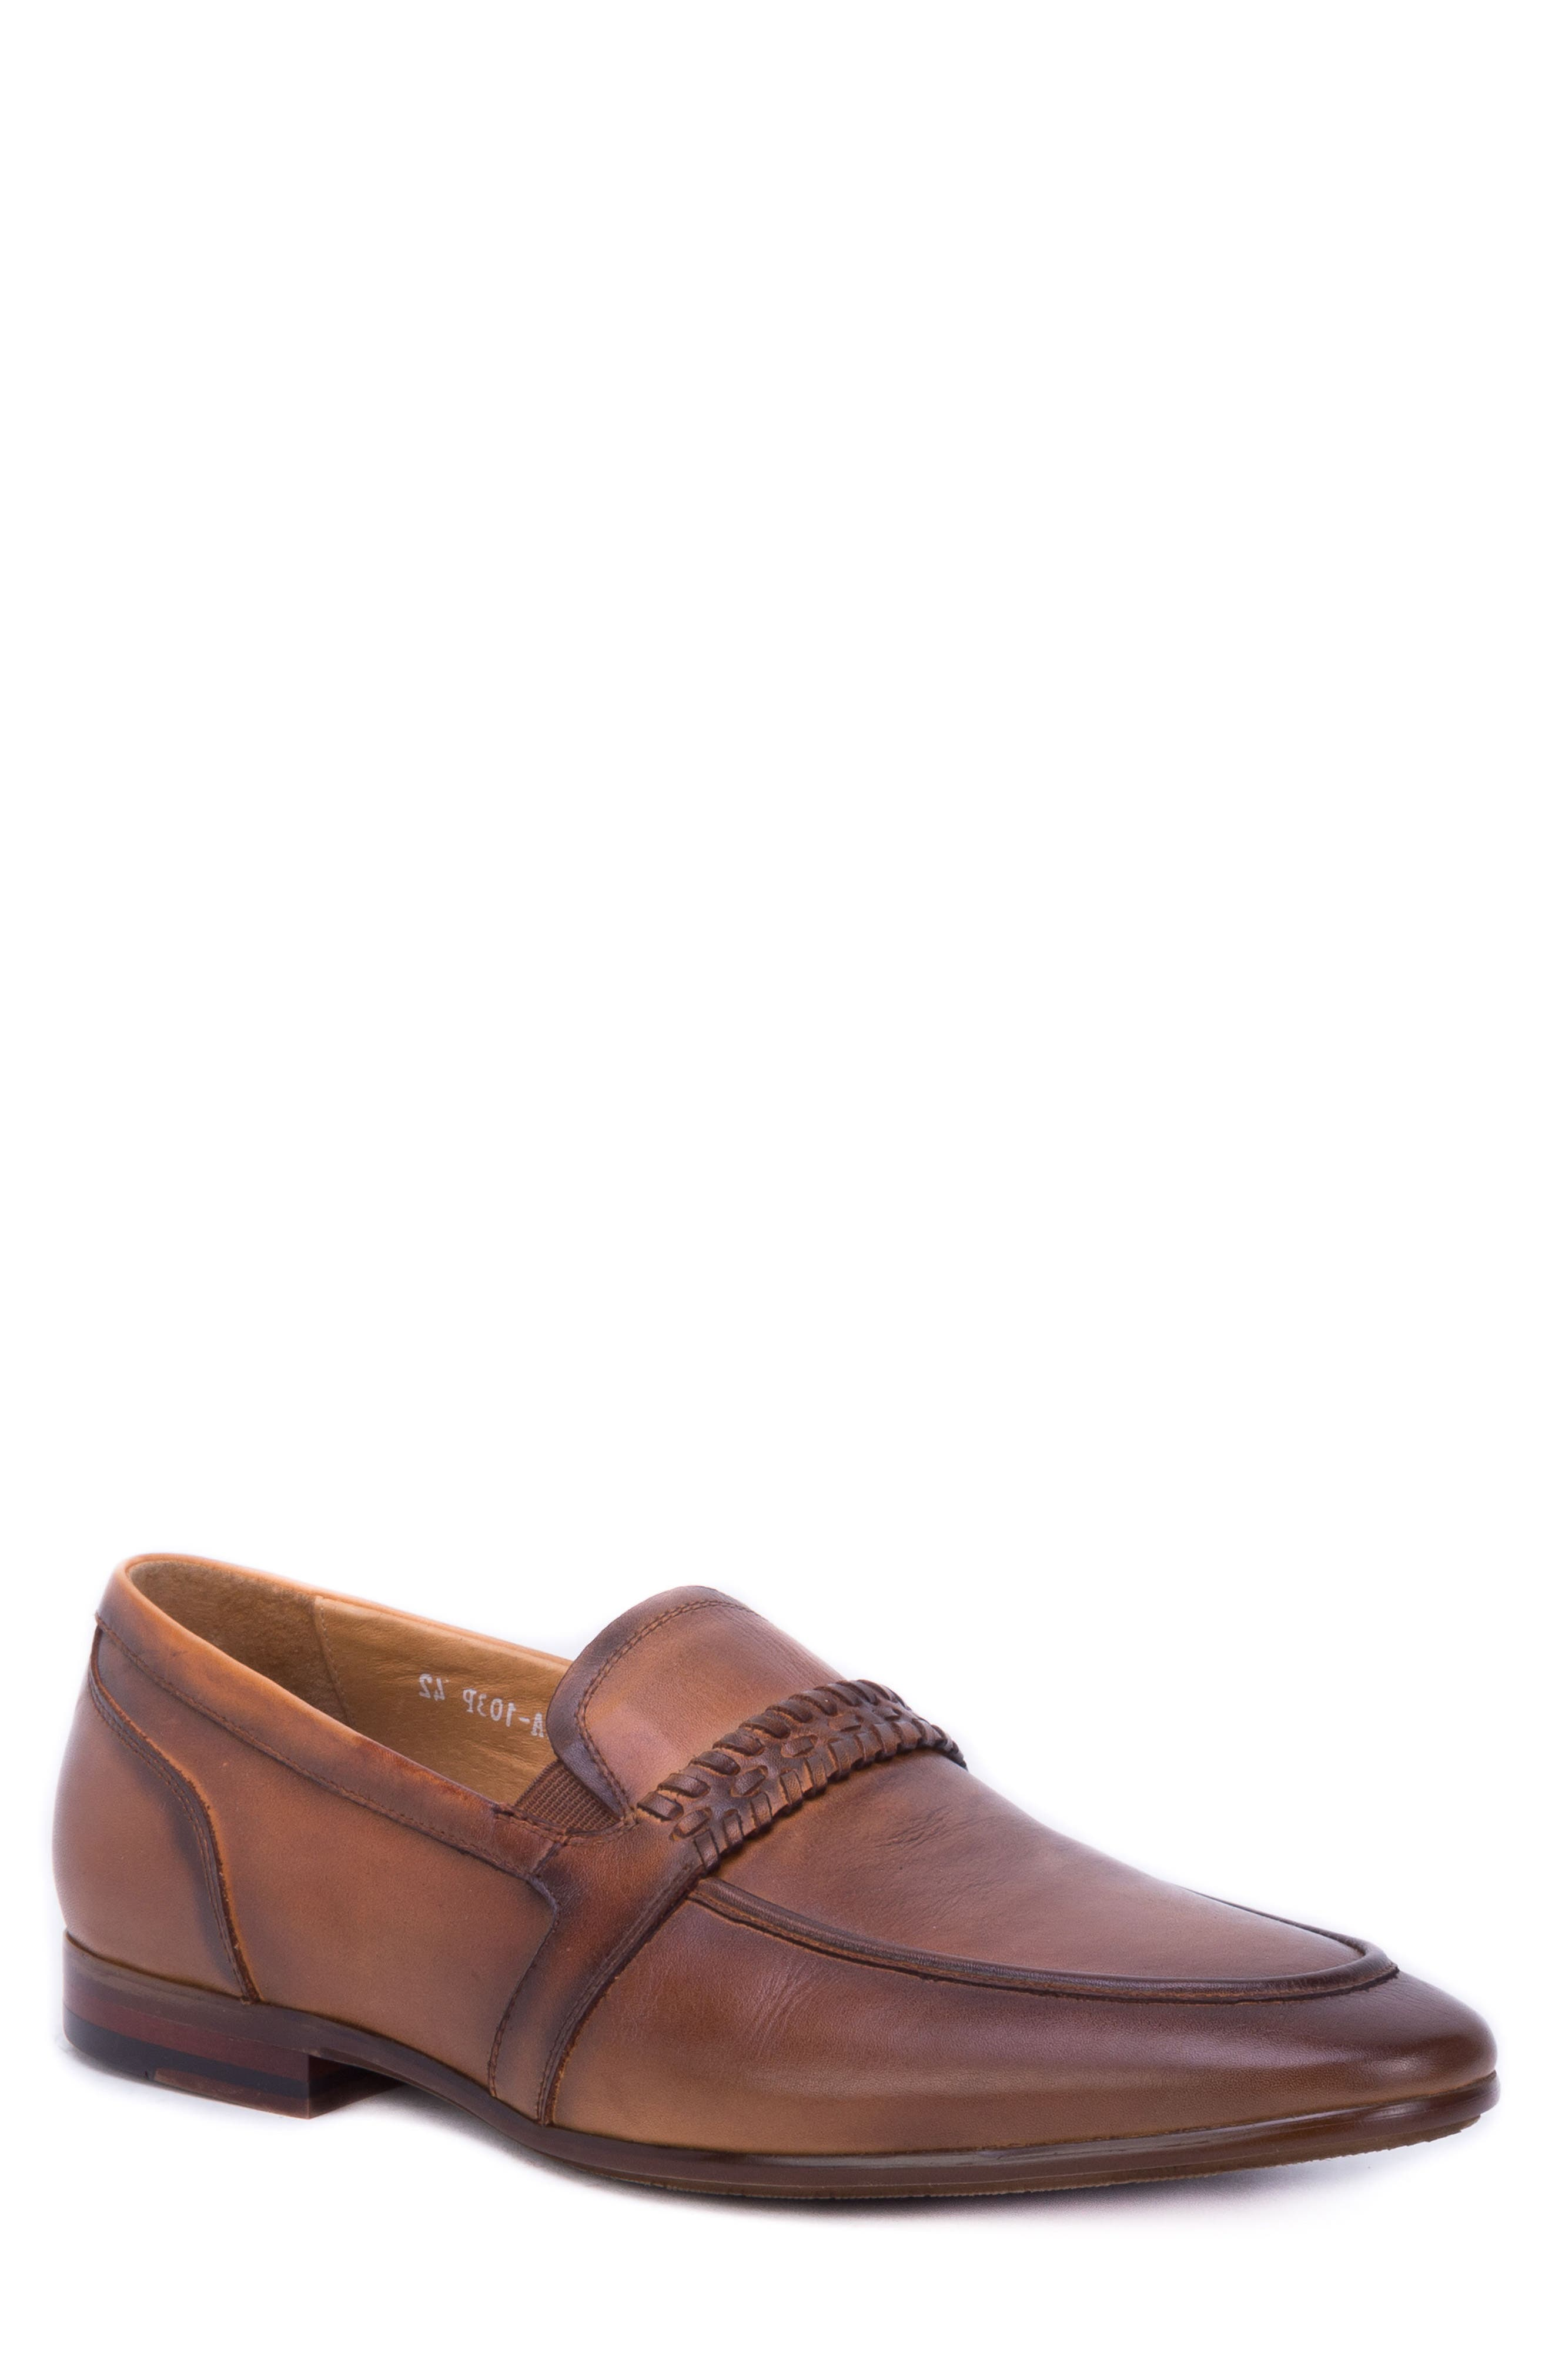 ROBERT GRAHAM ROBINSON WHIPSTITCH APRON TOE LOAFER